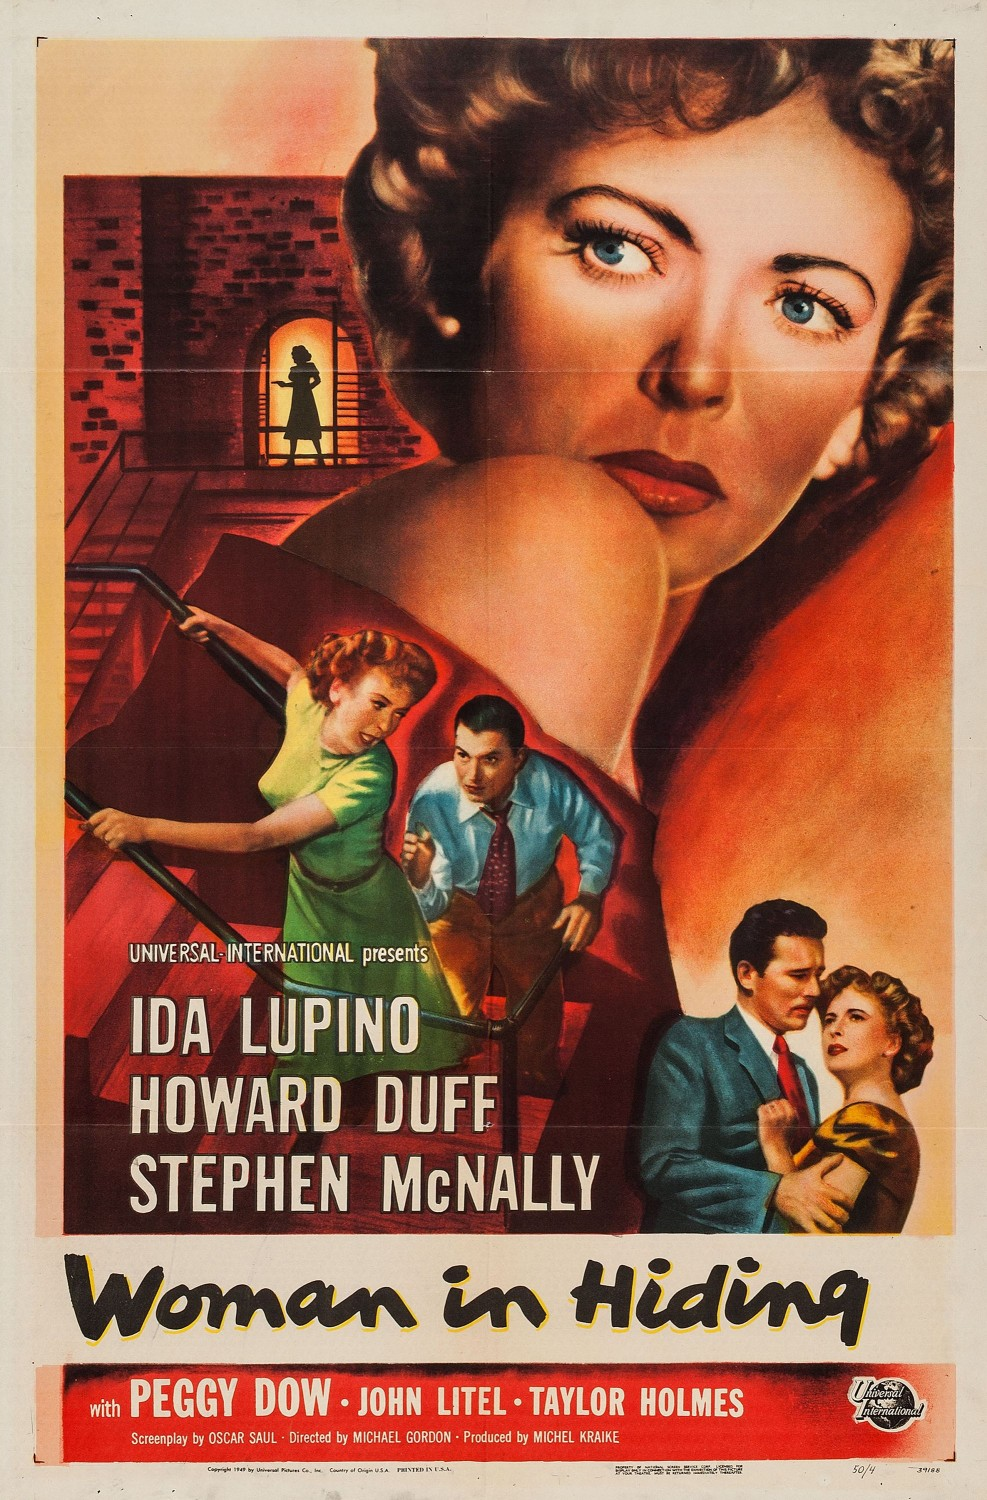 Woman in Hiding (1950)